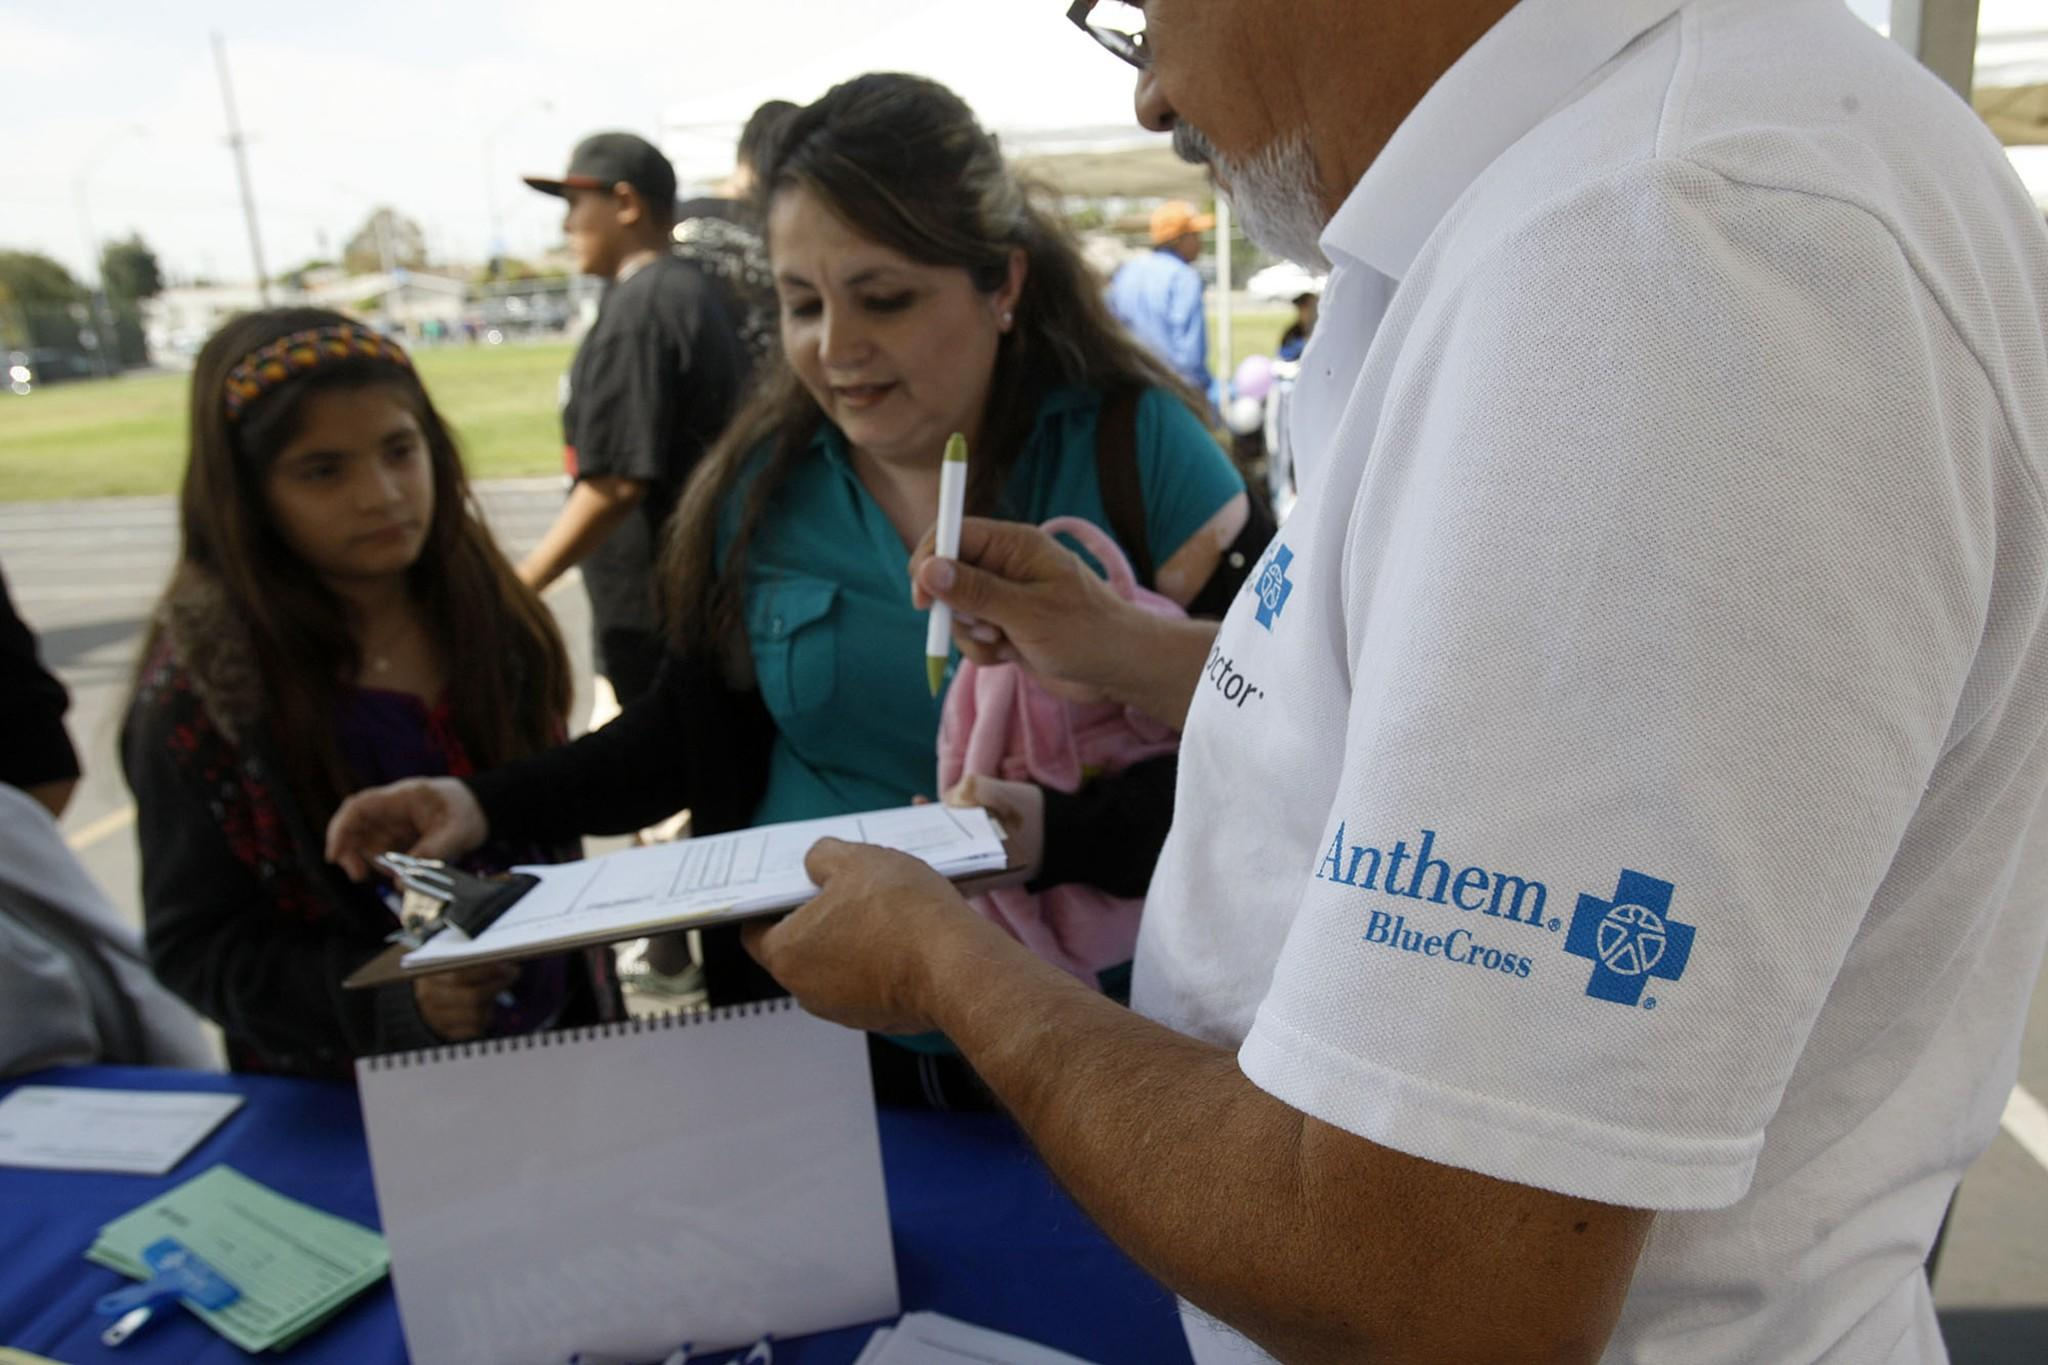 Anthem Blue Cross said its plan to raise rates reflects that escalating healthcare costs are a reality industrywide. Above, the Anthem booth at a health fair in East Los Angeles.